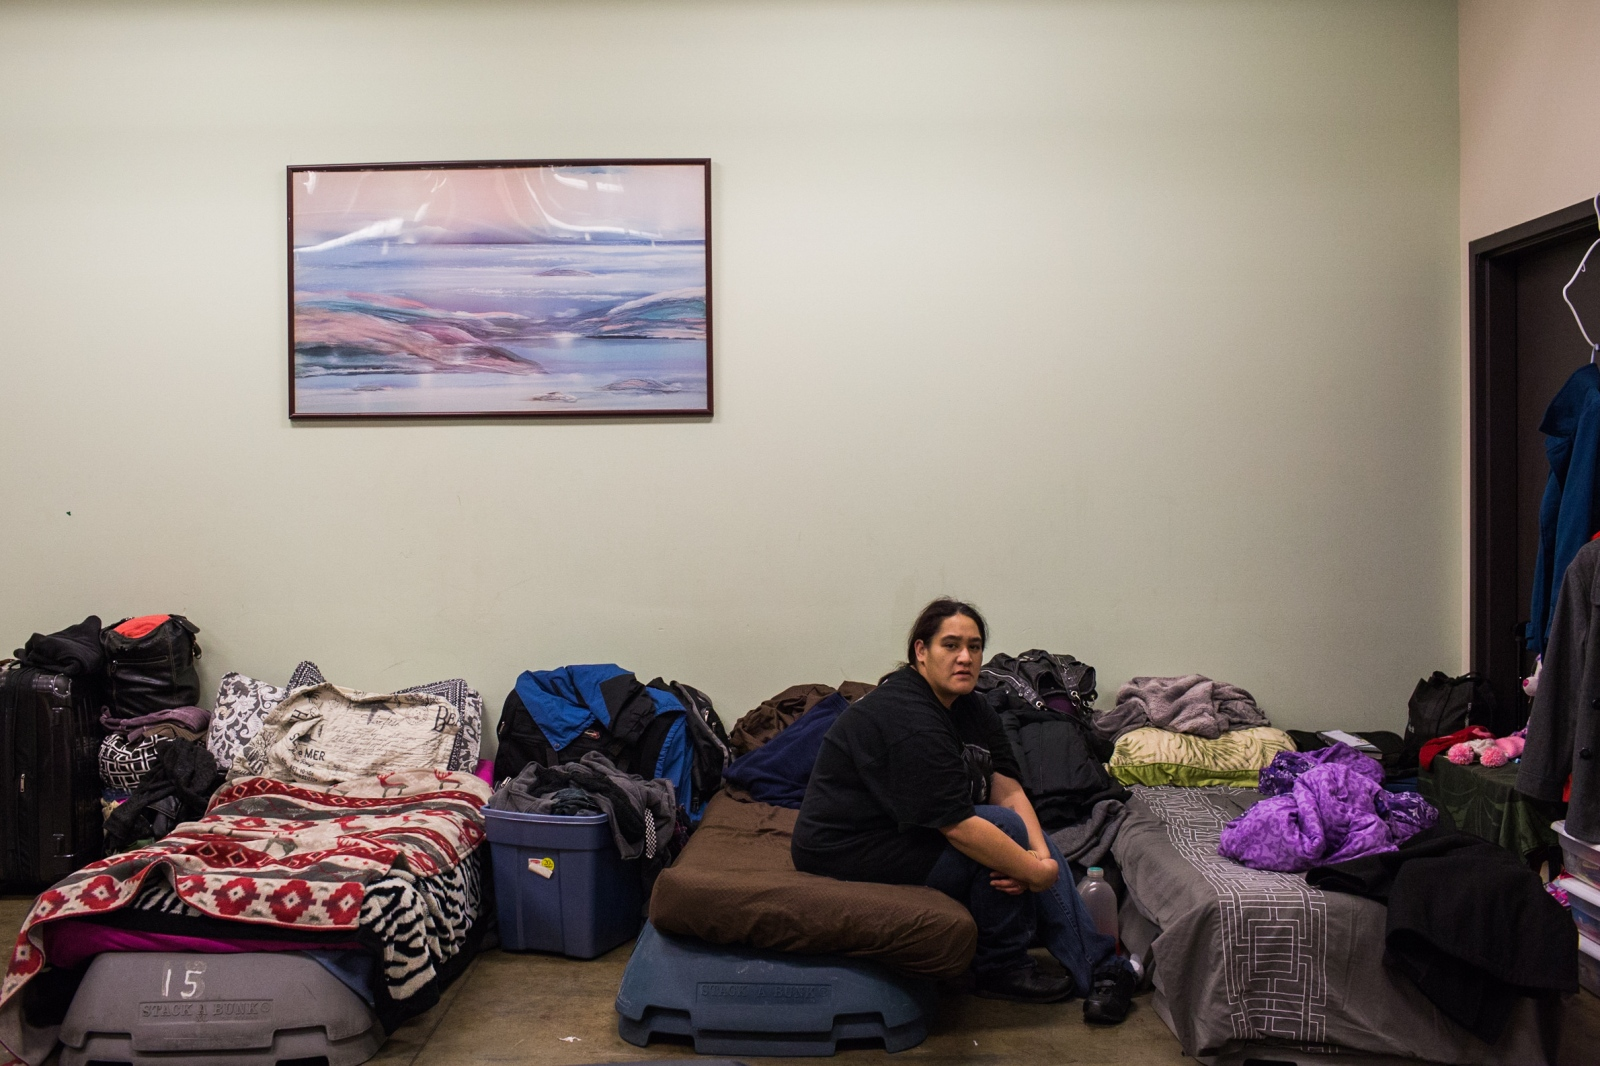 Shara Summers, 32, sits on her bed in the women's dormitory in Brother Francis Shelter in Anchorage. Summers says she has been homeless for most of her life.